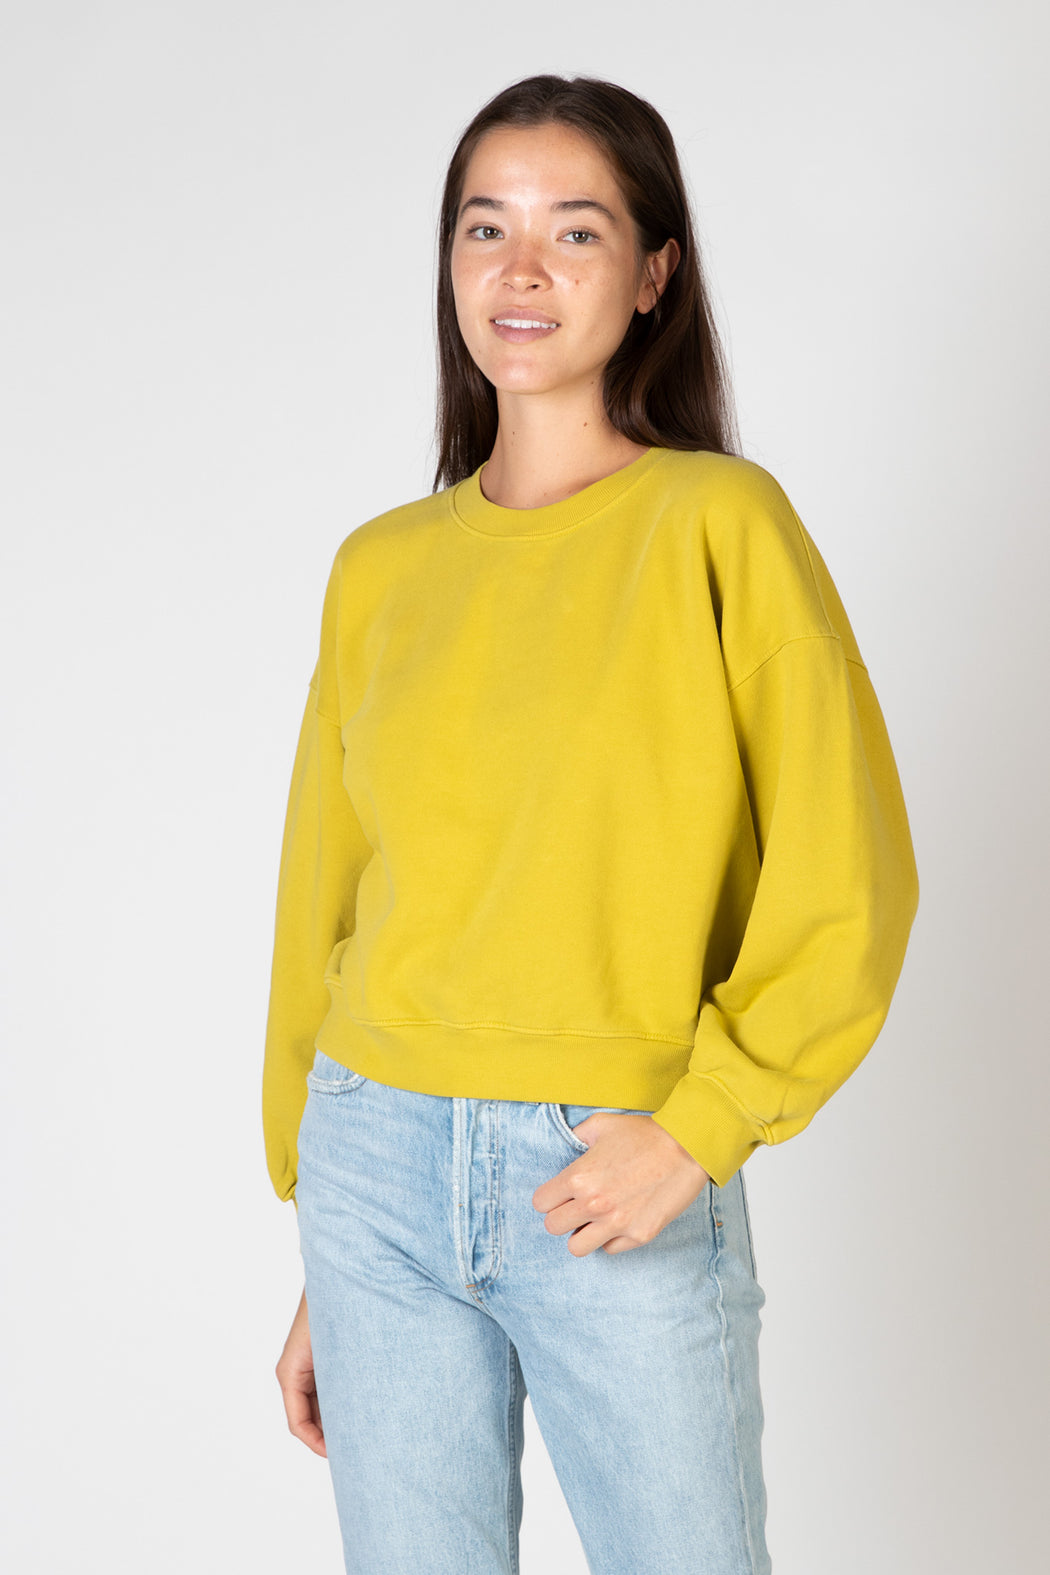 AGOLDE-Balloon-Sleeve-Sweatshirt-Split-Pea